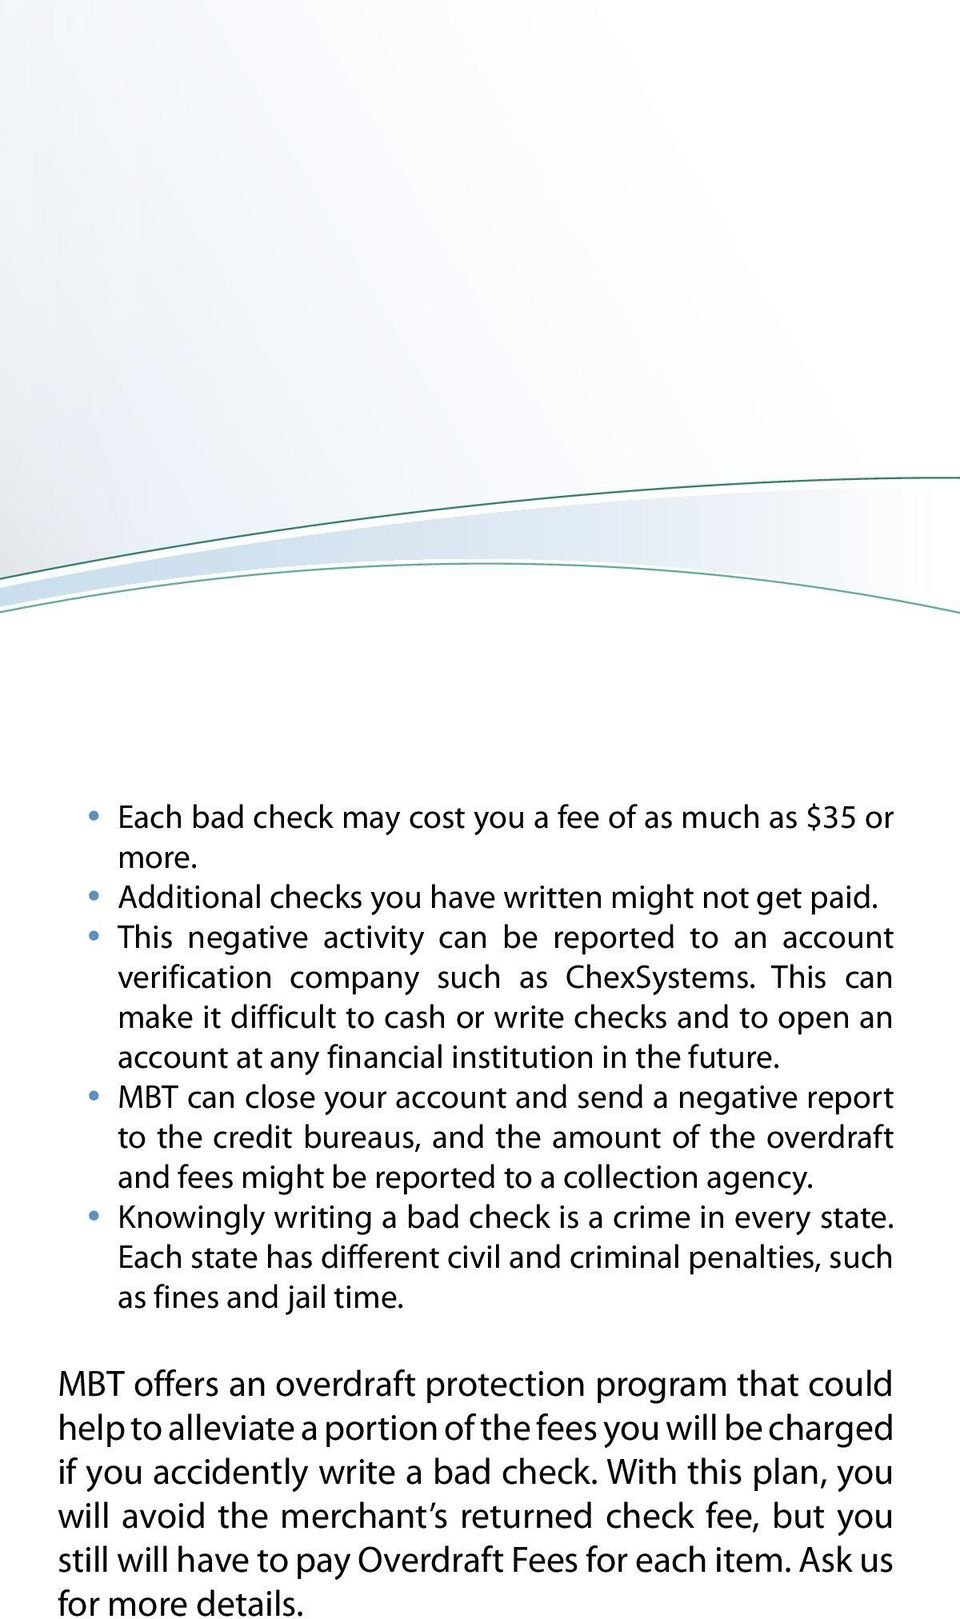 This can make it difficult to cash or write checks and to open an account at any financial institution in the future.